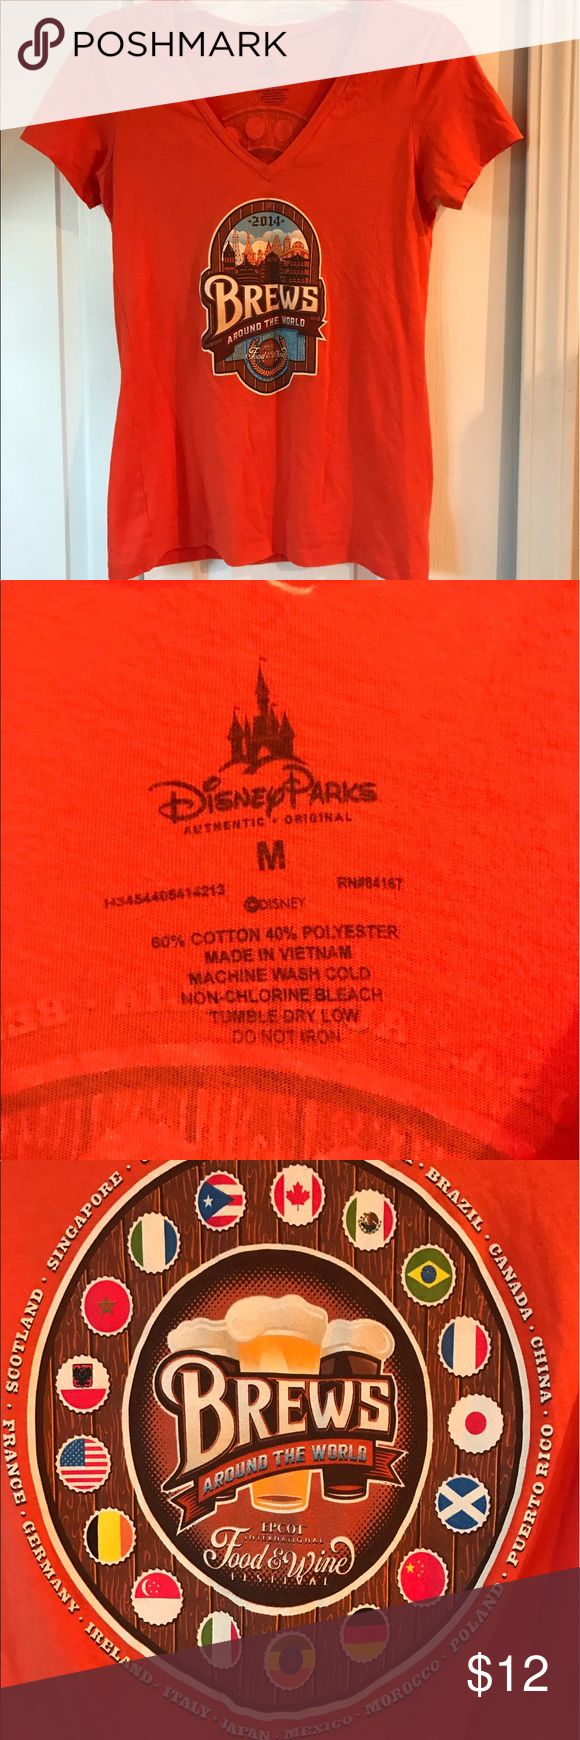 Disney Parks Womens medium Beers of the world fest Sold in the park and nowhere else. Not even online. Gorgeous burnt orange women's brews of the world tshirt from the Epcot food and wine festival. Since most of you probably don't get out to Disney much, this would be a cute addition to the closet of any woman who like Disney, beer, and style. Premier preworn condition. No rips, holes, stains or excess wear. disney parks Tops Tees - Short Sleeve